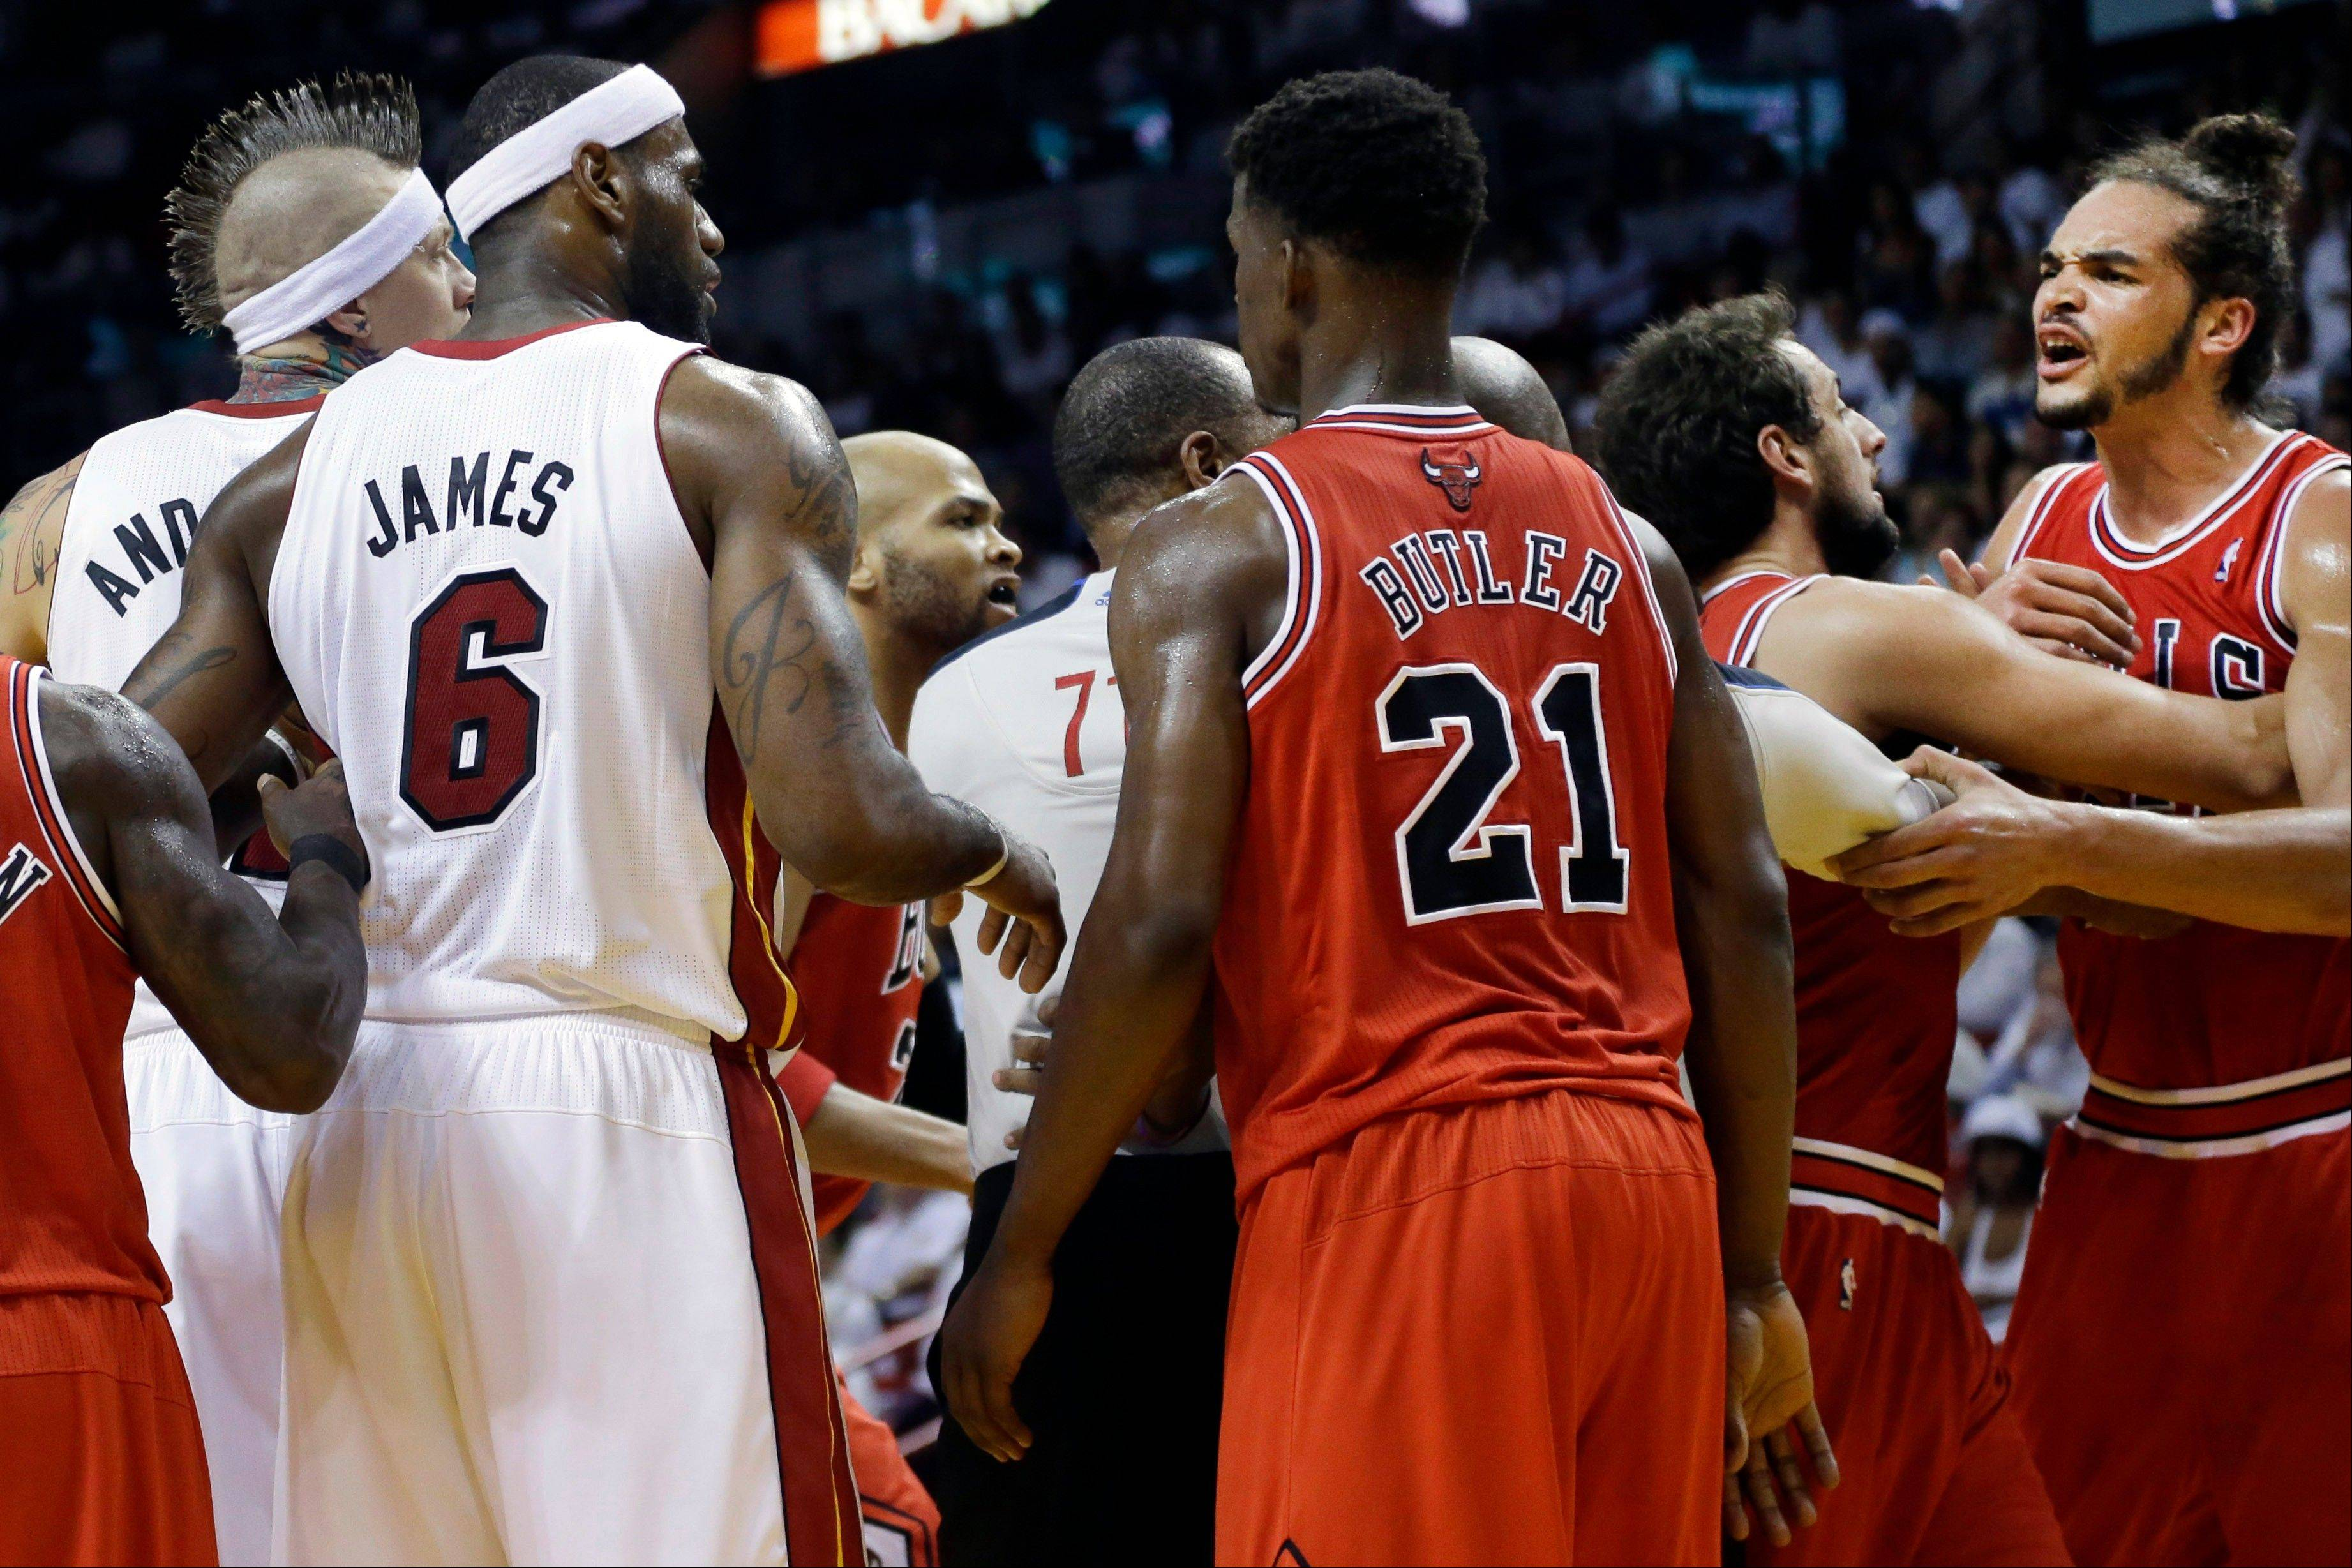 Bulls center Joakim Noah, far right, yells after he and Miami Heat forward LeBron James received technical fouls Wednesday in Game 2 of their NBA Eastern Conference semifinals.